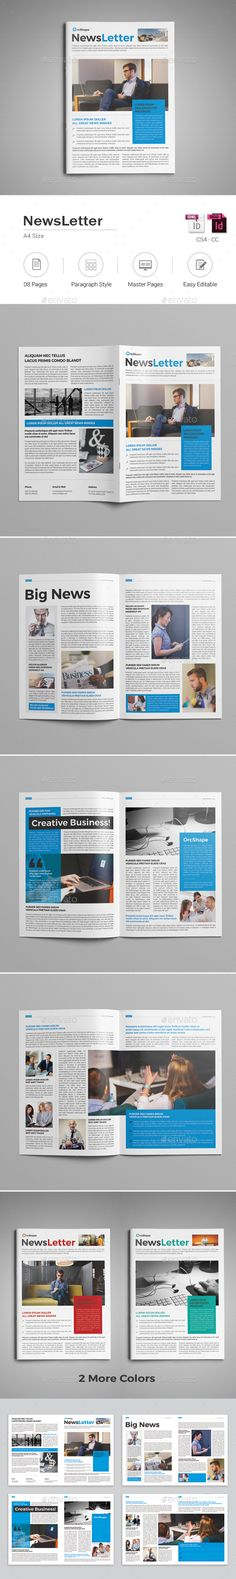 Newsletter Template InDesign INDD. Download here: https://graphicriver.net/item/newsletter-template/17596464?ref=ksioks